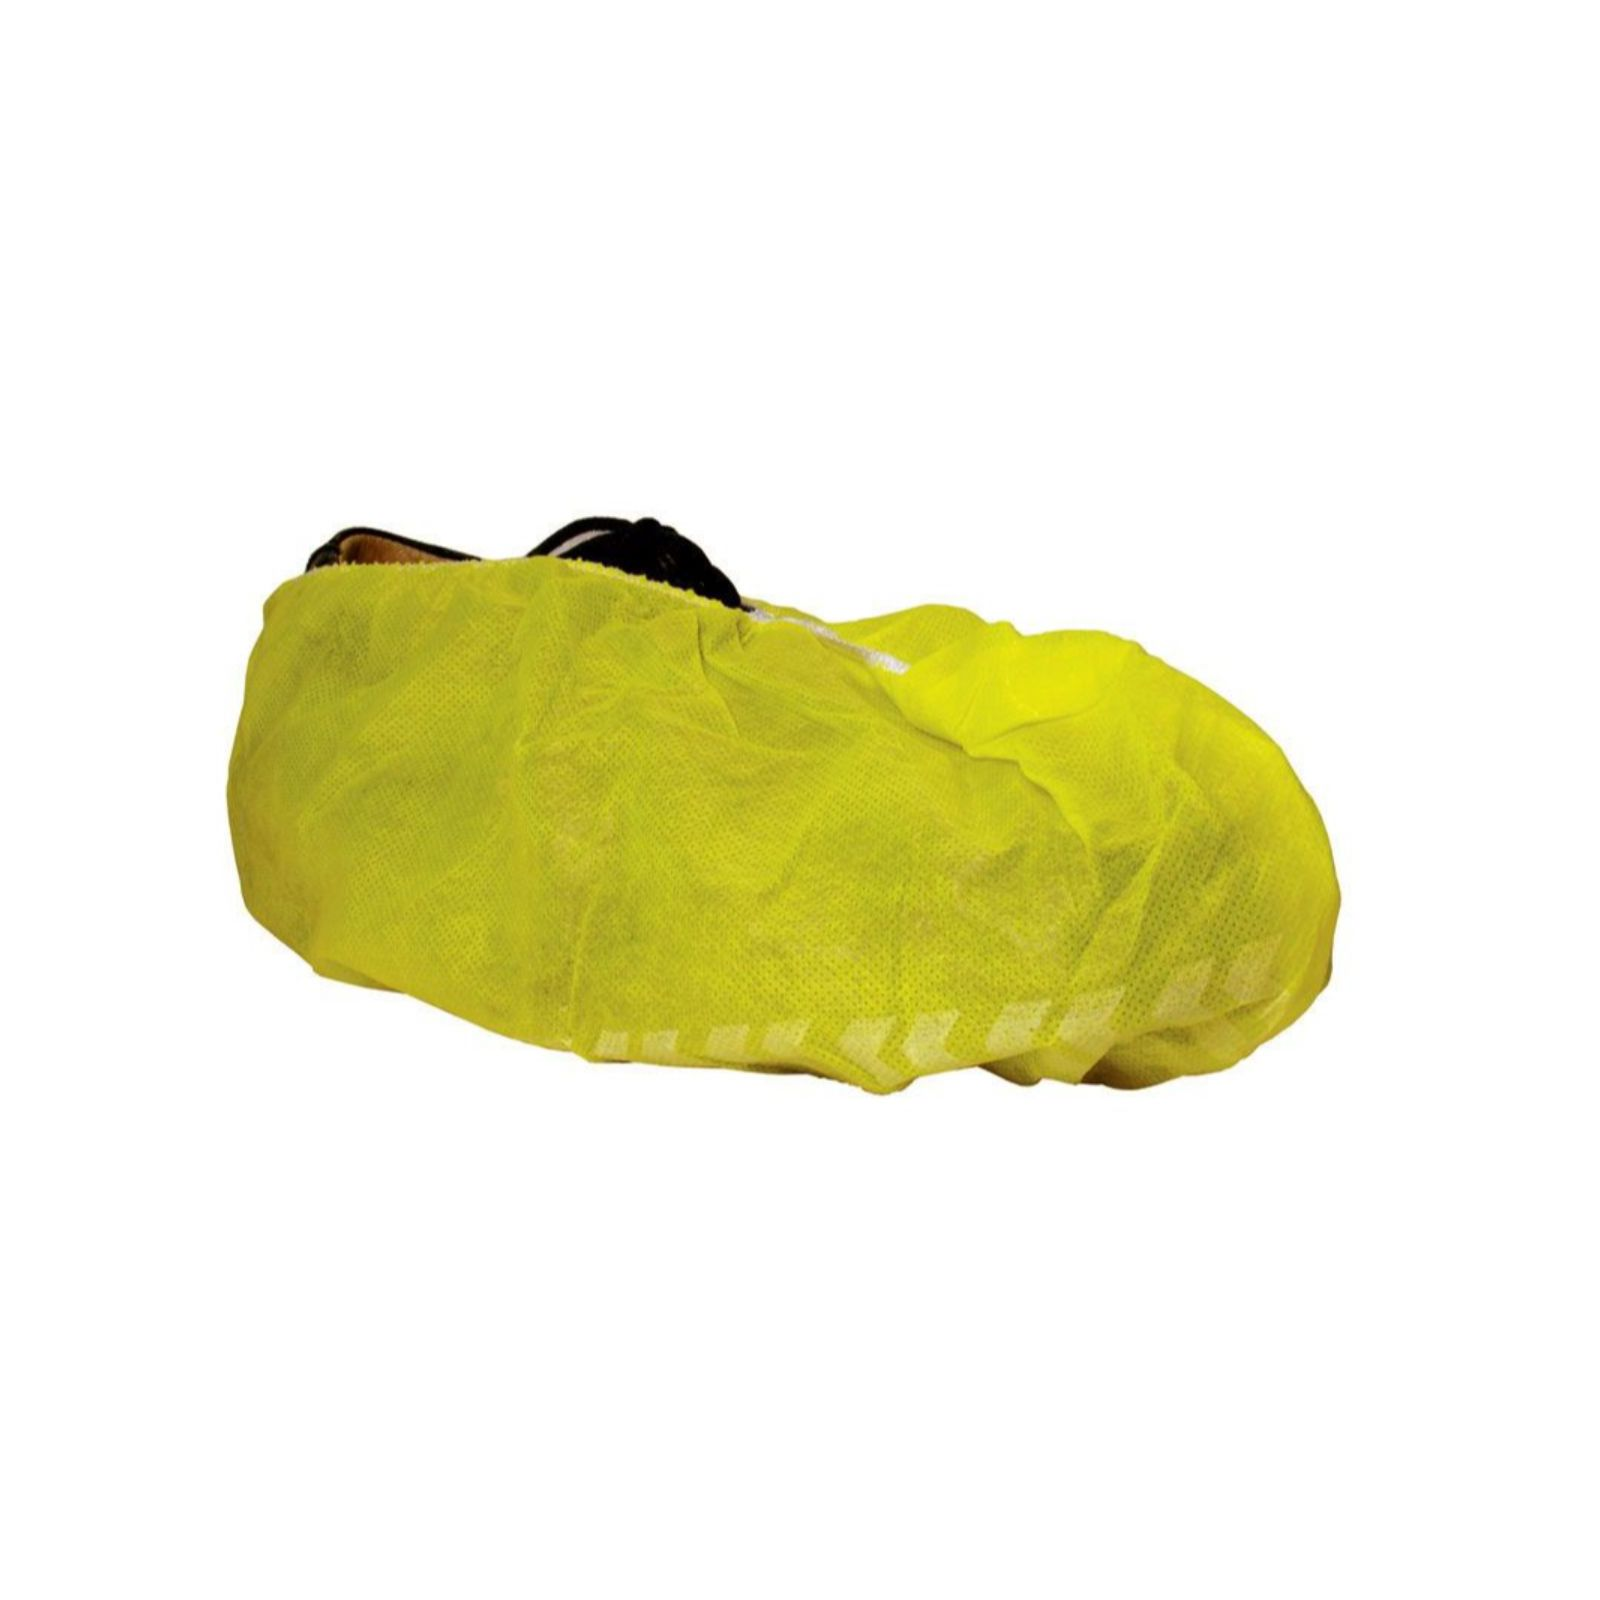 ShuBee 849114 - Shoe Covers - Yellow (Box of 50 Pairs)